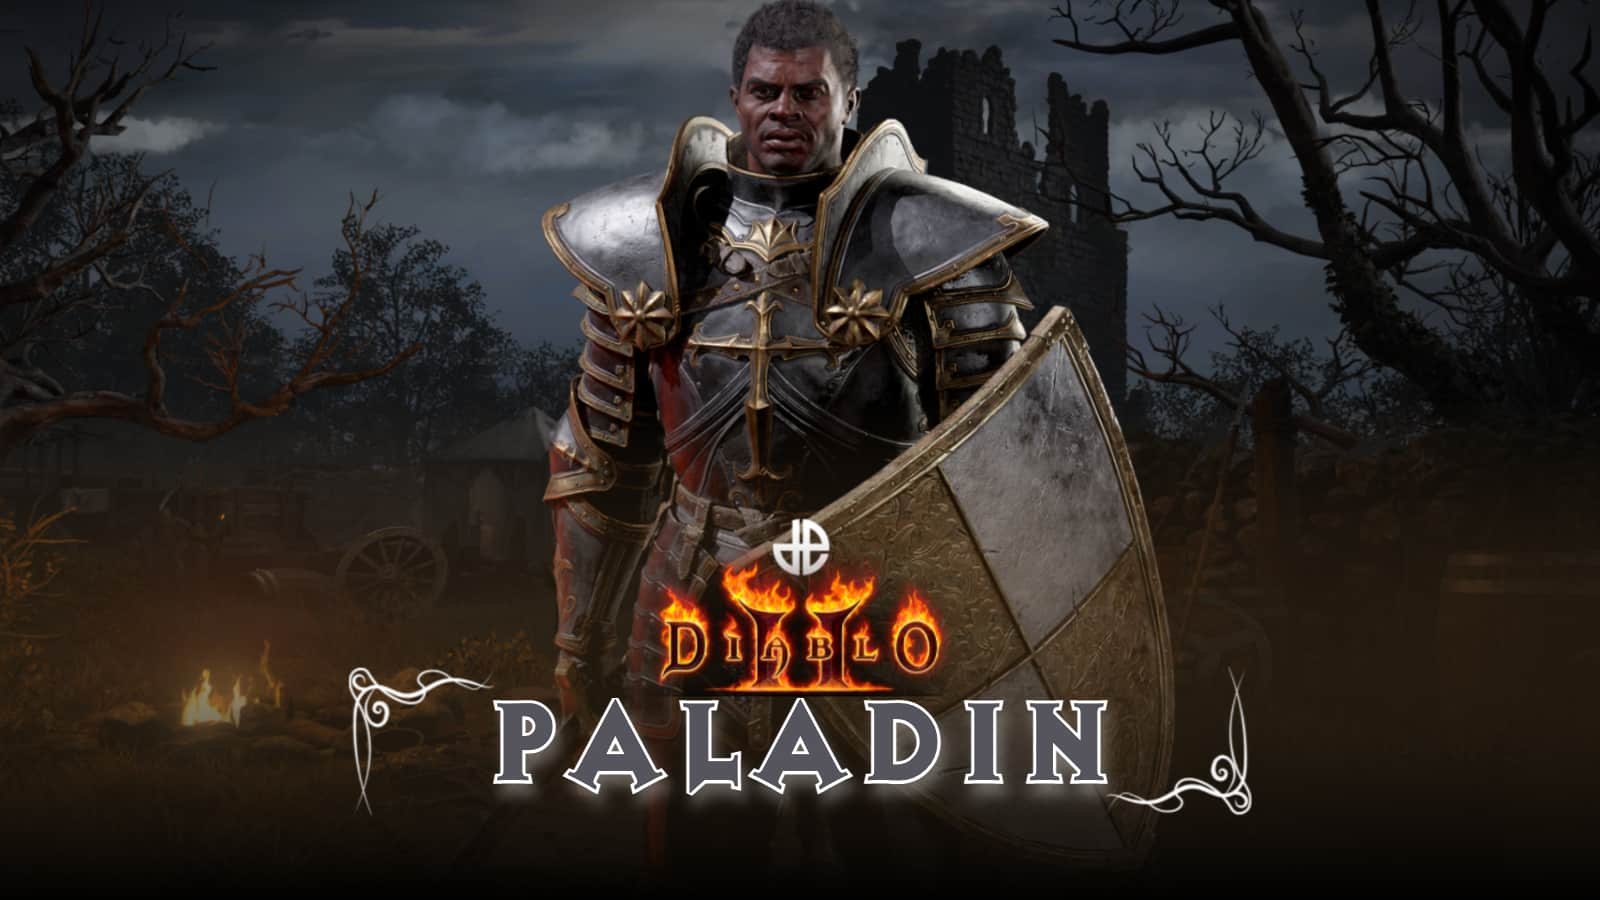 Diablo 2: Resurrected - 2 builds for the paladin, explained quickly and easily